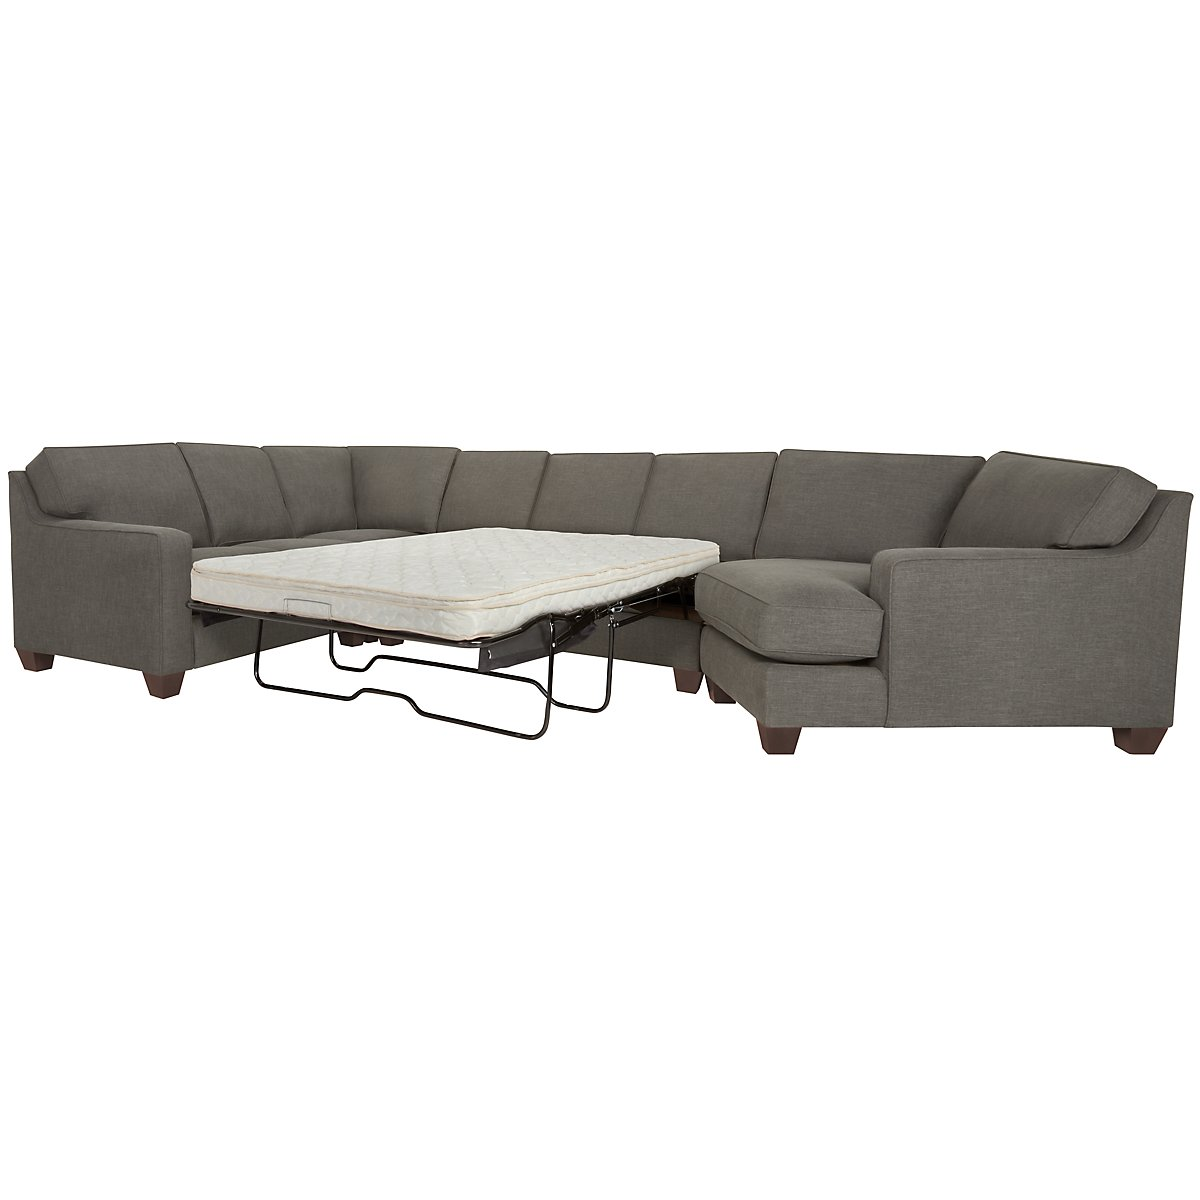 York Dark Gray Fabric Small Right Cuddler Innerspring Sleeper Sectional